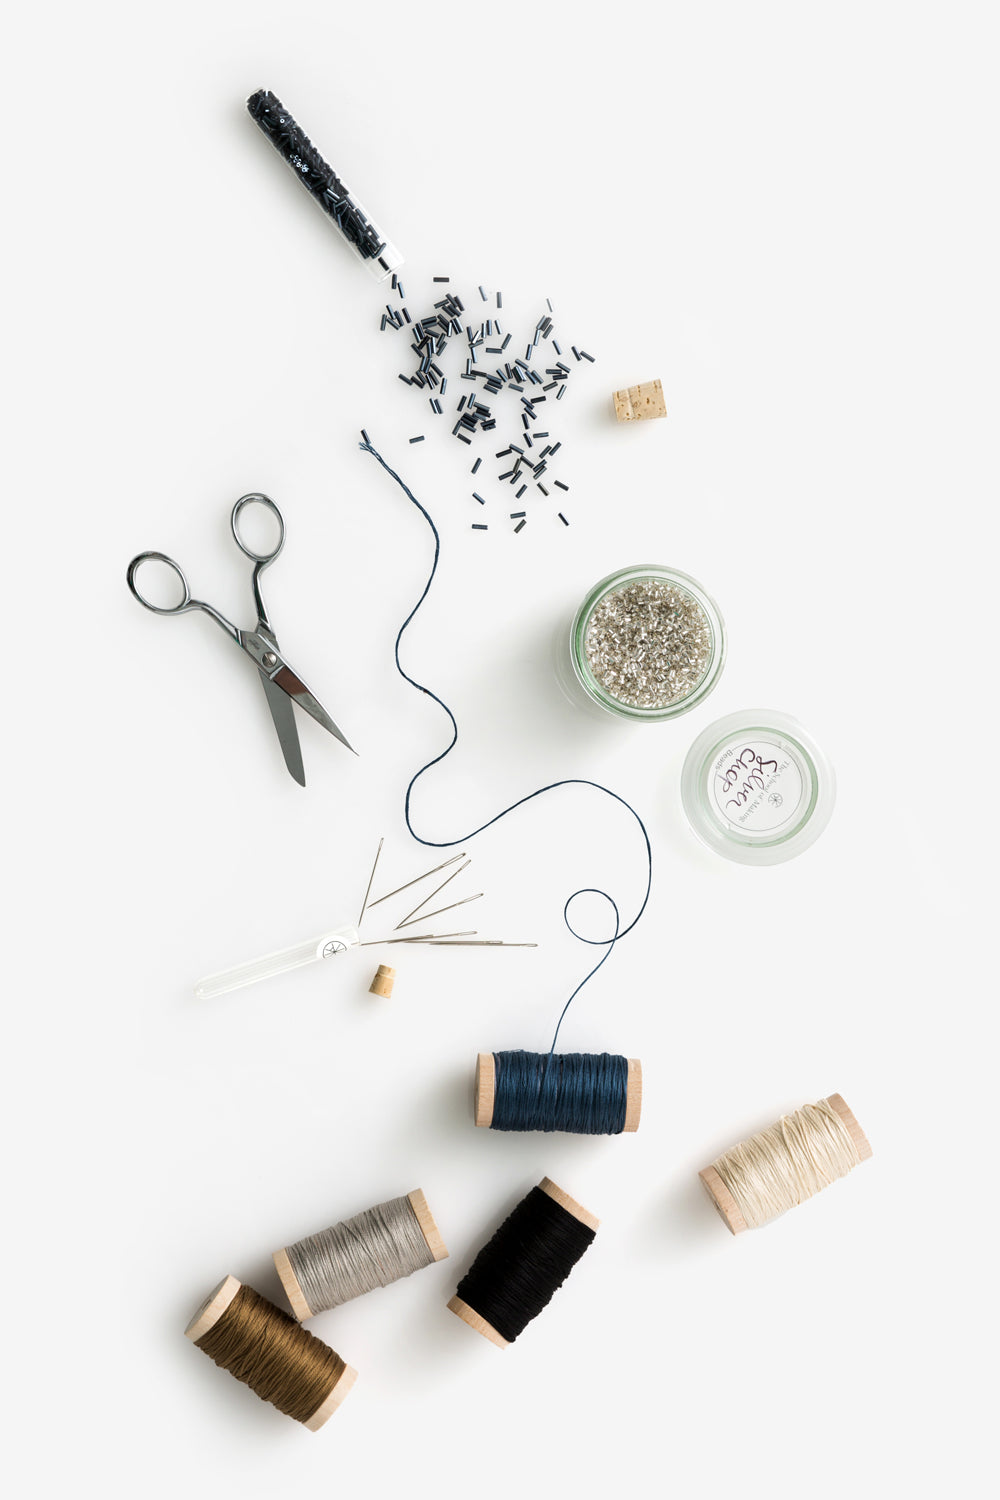 The School of Making Bead Sampler for Embellishing Hand-Sewn Pieces